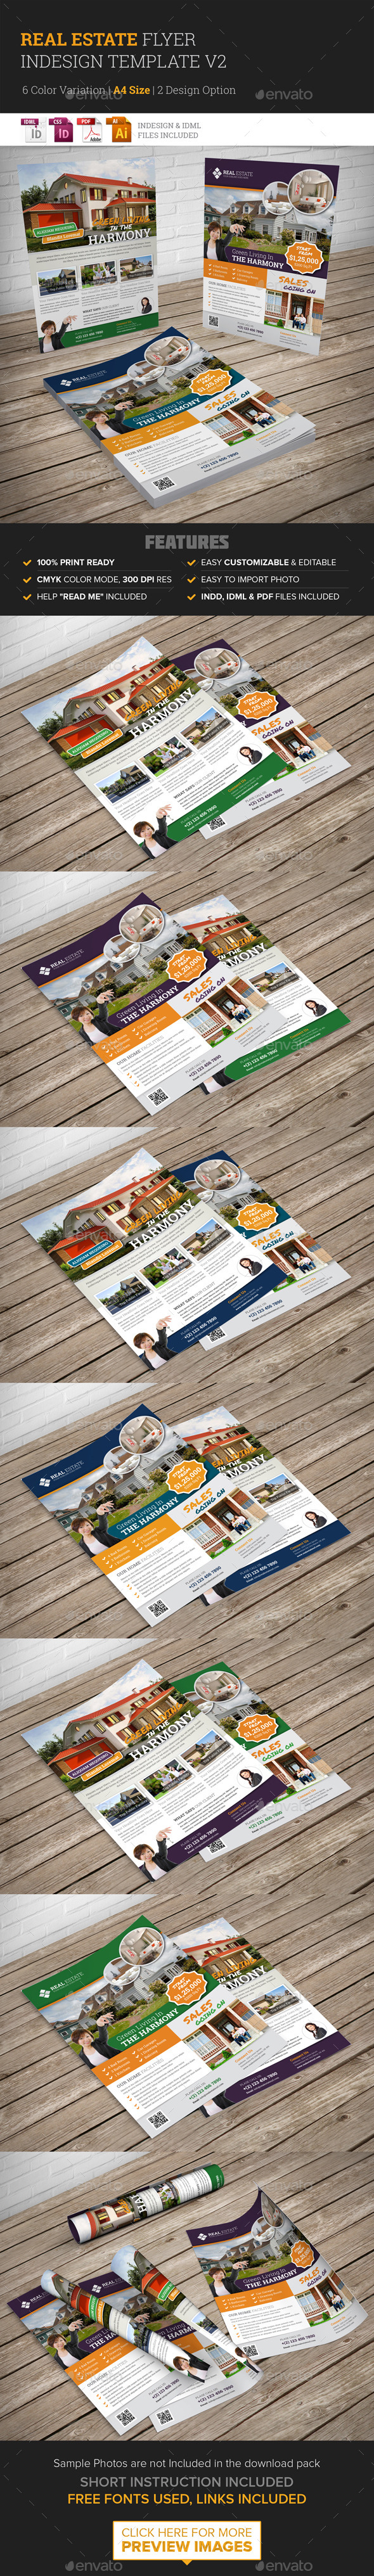 Real Estate Flyer Indesign Template v2